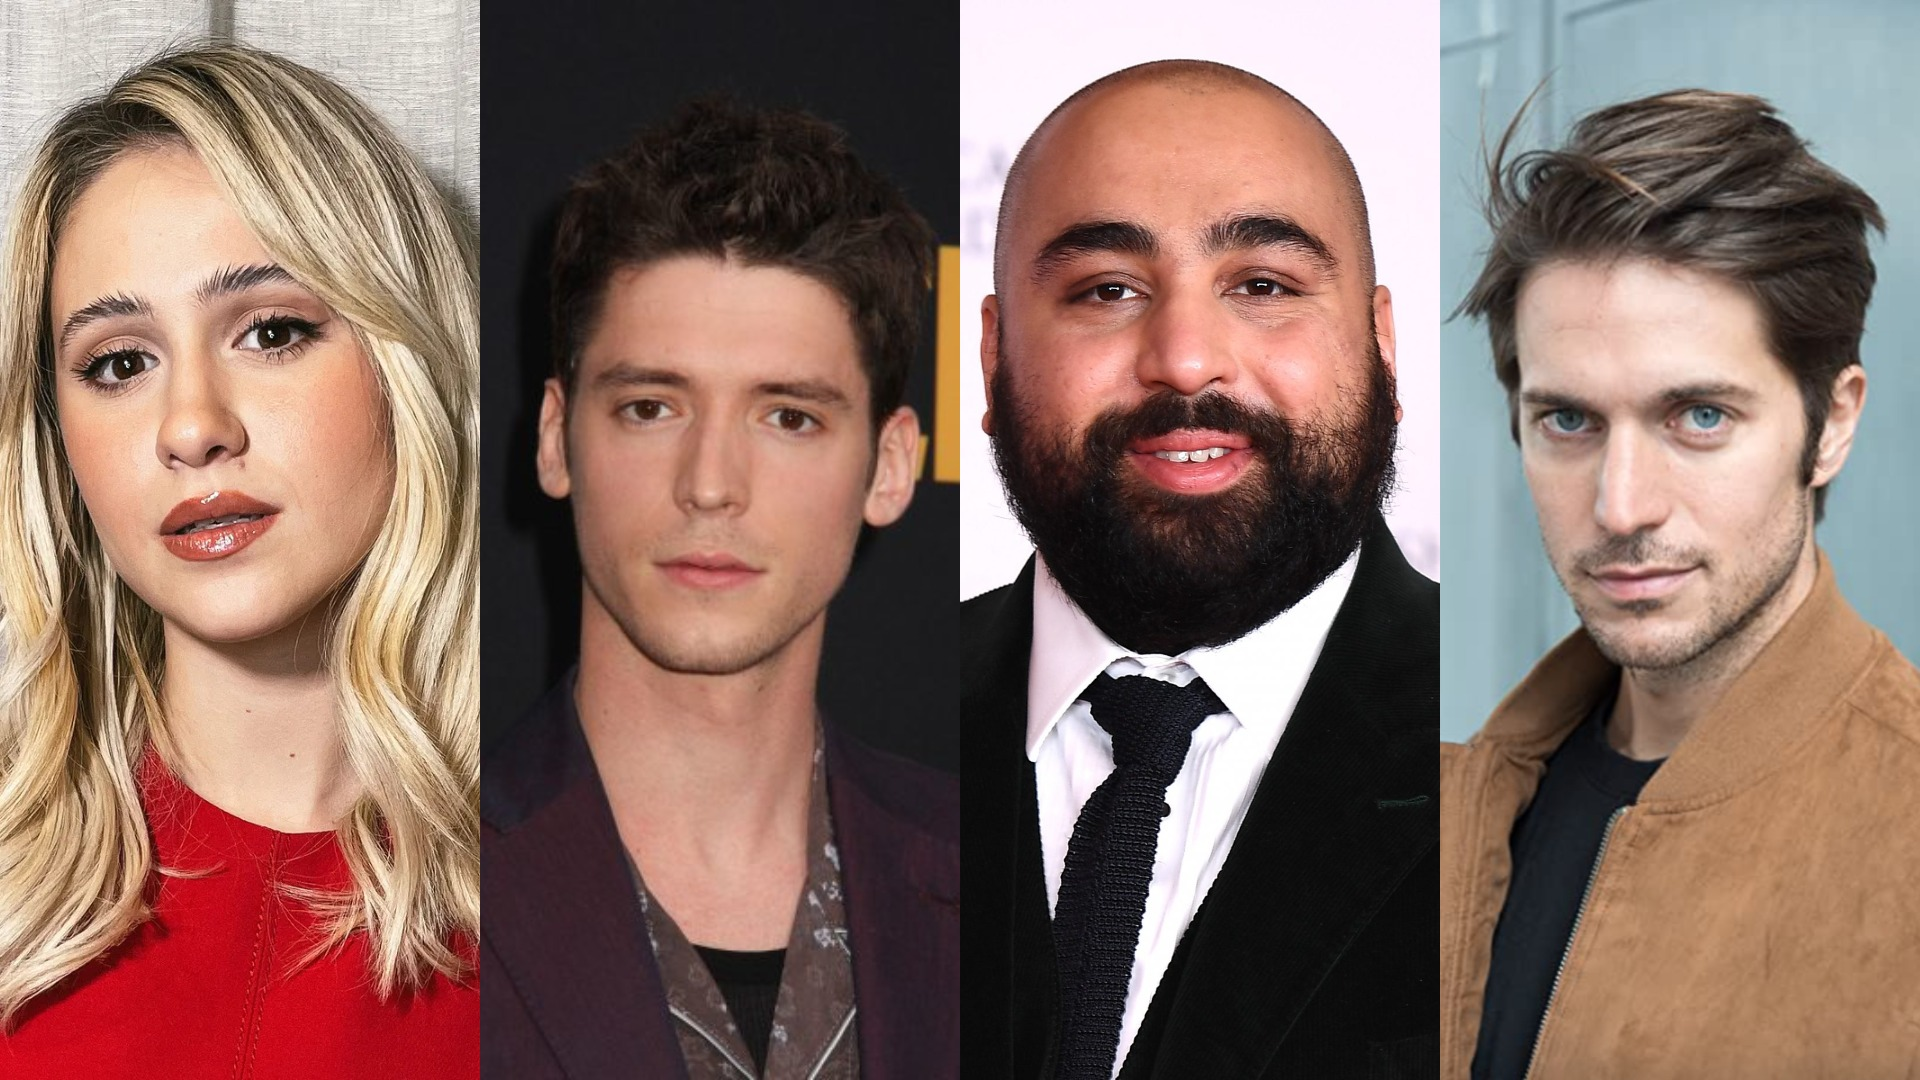 Deadline is reporting that Maria Bakalova, Pico Alexander, Asim Chaudhry and Lucas Bravo are set to star in the romantic comedy The Honeymoon.